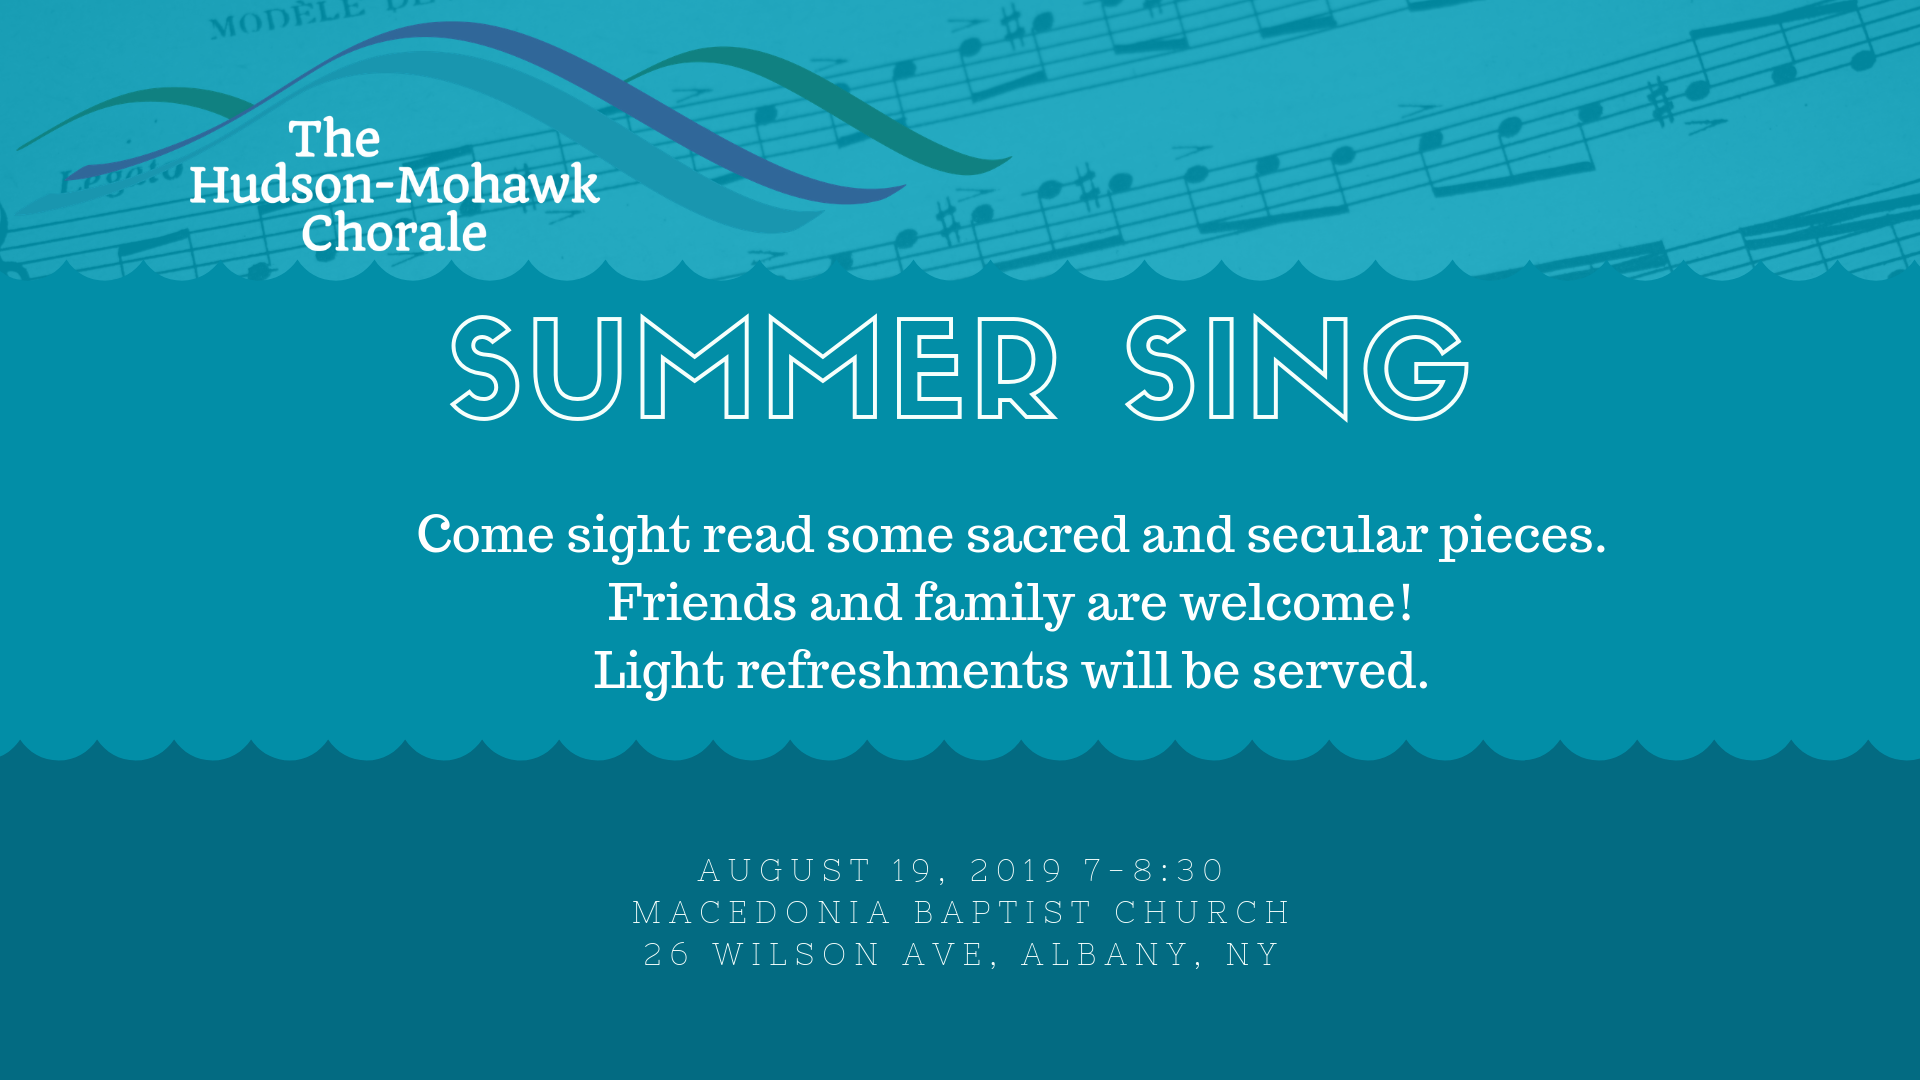 Summer Sing - Date: August 19, 2019 7:00 - 9:00 PMWhere: Macedonia Baptist Church26 Wilson Ave, Albany, NYRead through a number of pieces, some familiar and some not, both sacred and secular. Friends and family are also invited to come! Light refreshments will be served. Ample parking lot. Handicapped accessible.Please drop us a brief